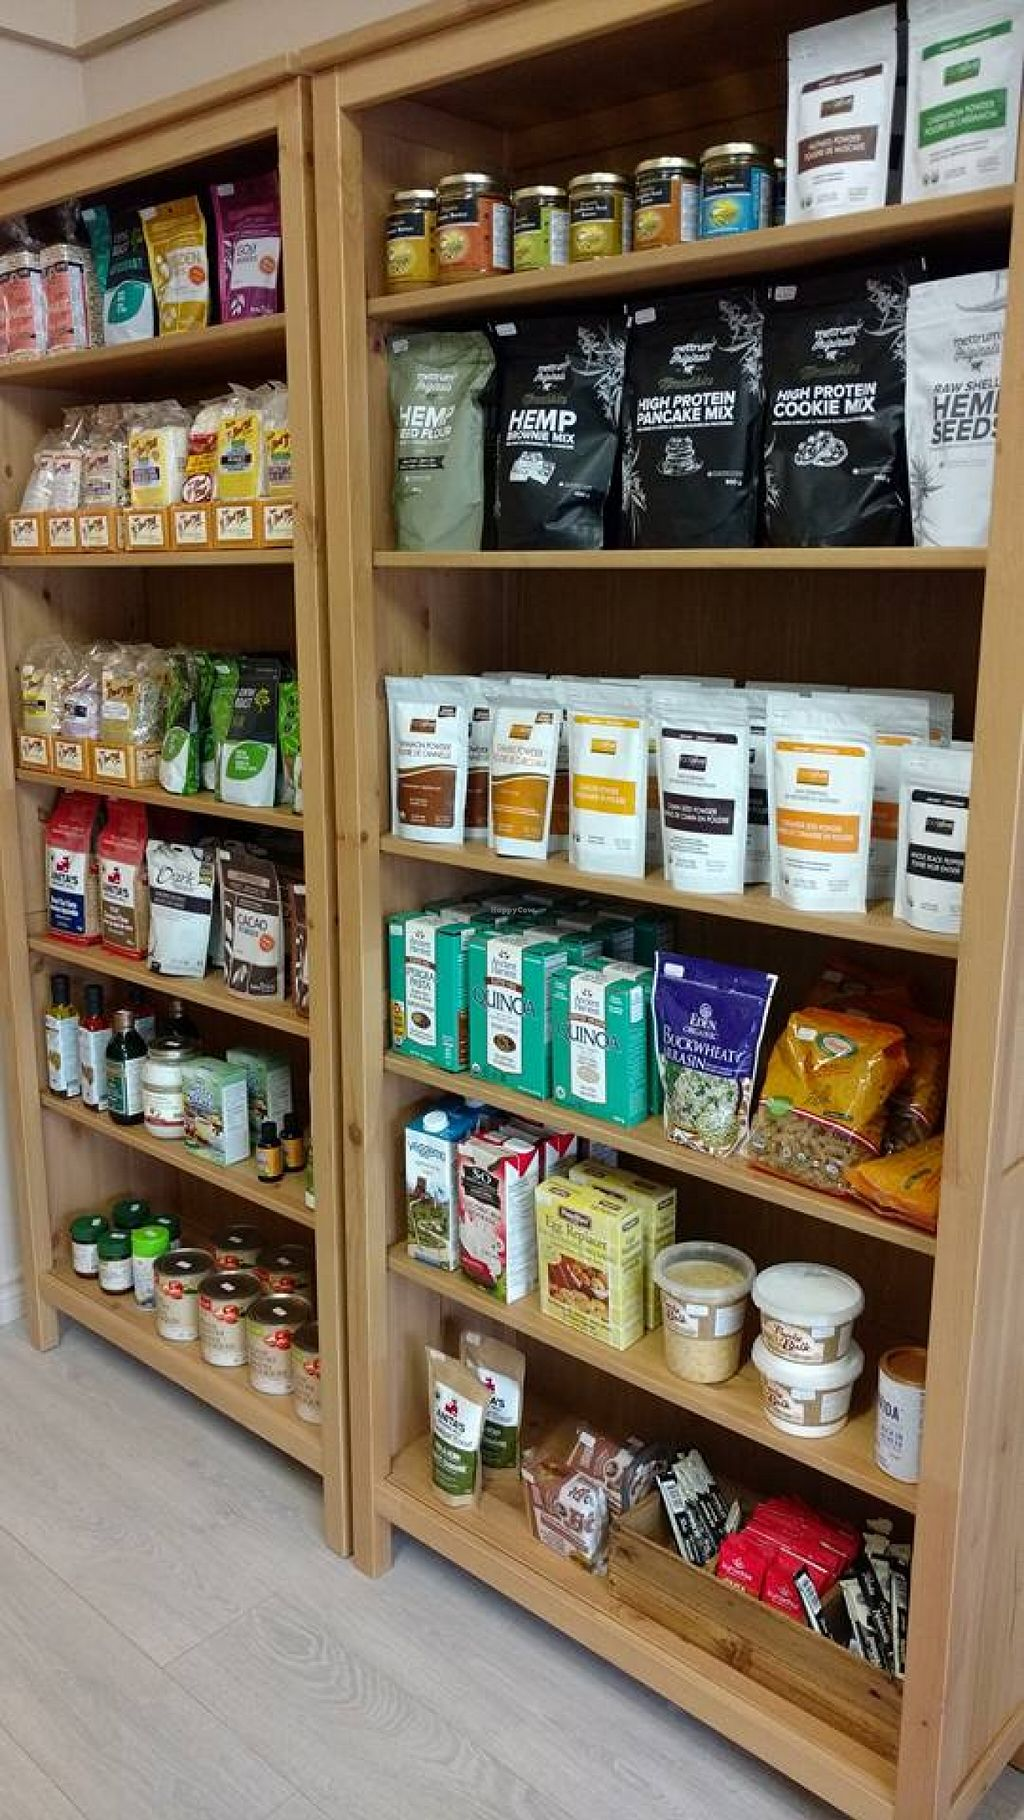 """Photo of Myrtle Tree Natural Foods   by <a href=""""/members/profile/community"""">community</a> <br/>Myrtle Tree Natural Foods <br/> April 7, 2016  - <a href='/contact/abuse/image/72109/143217'>Report</a>"""